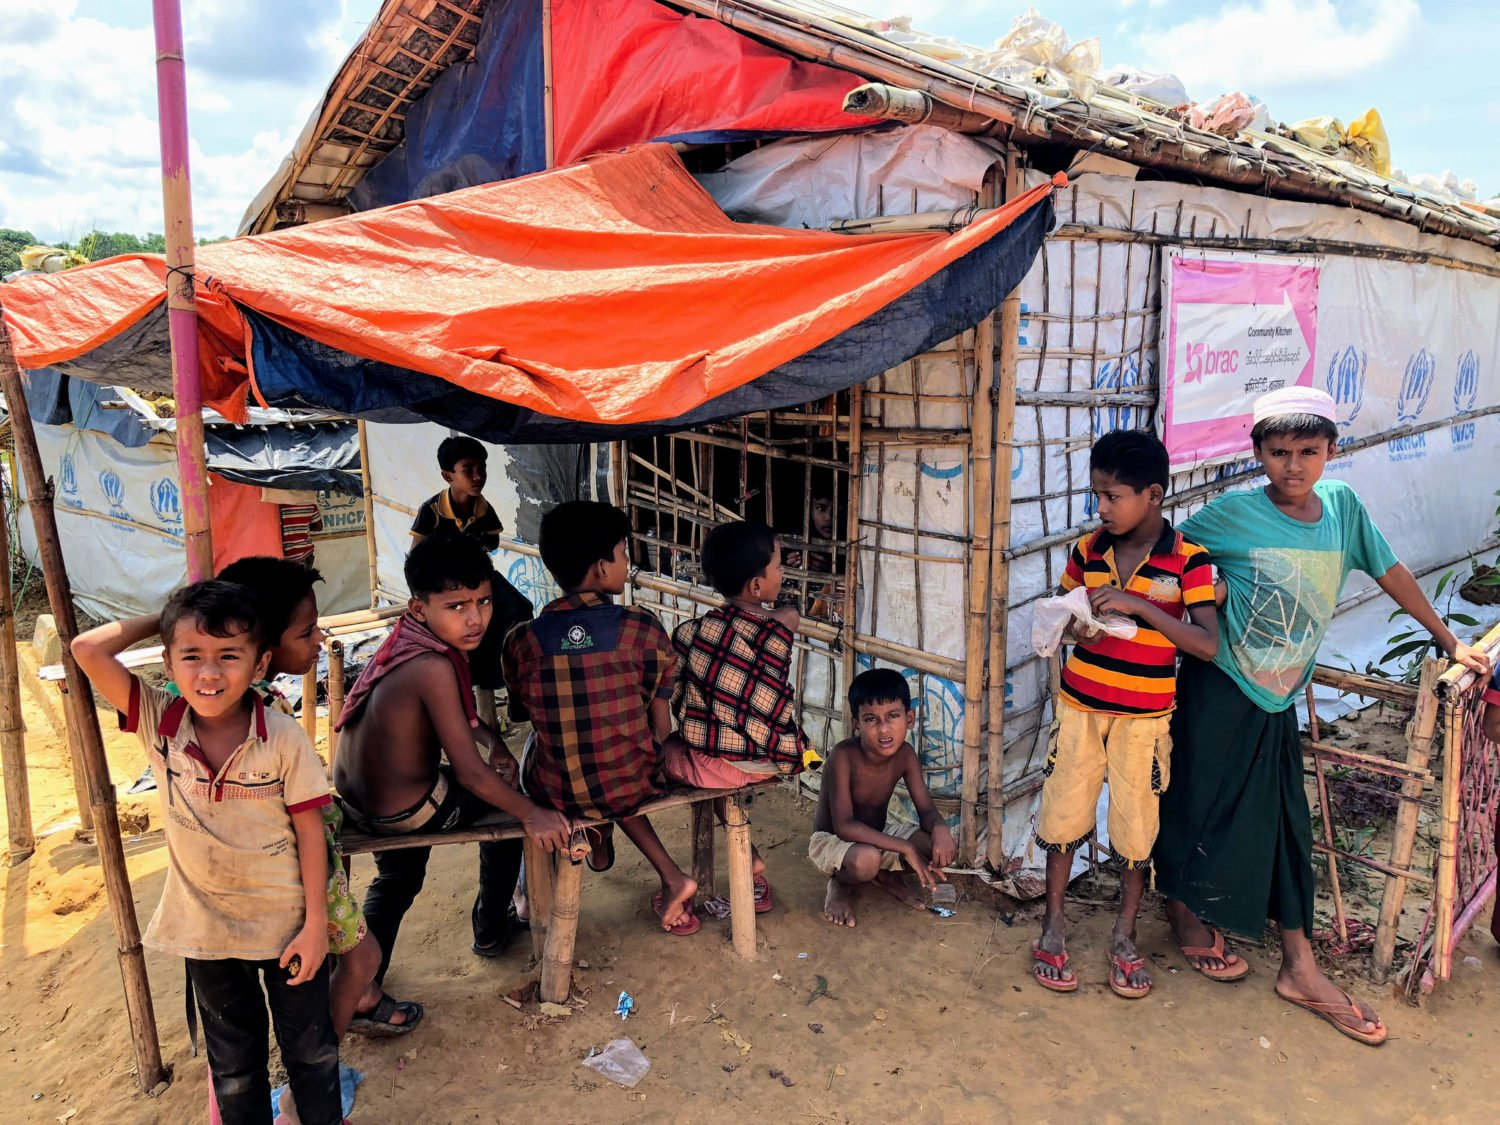 Reaching a new threshold in the persecution of the Rohingya